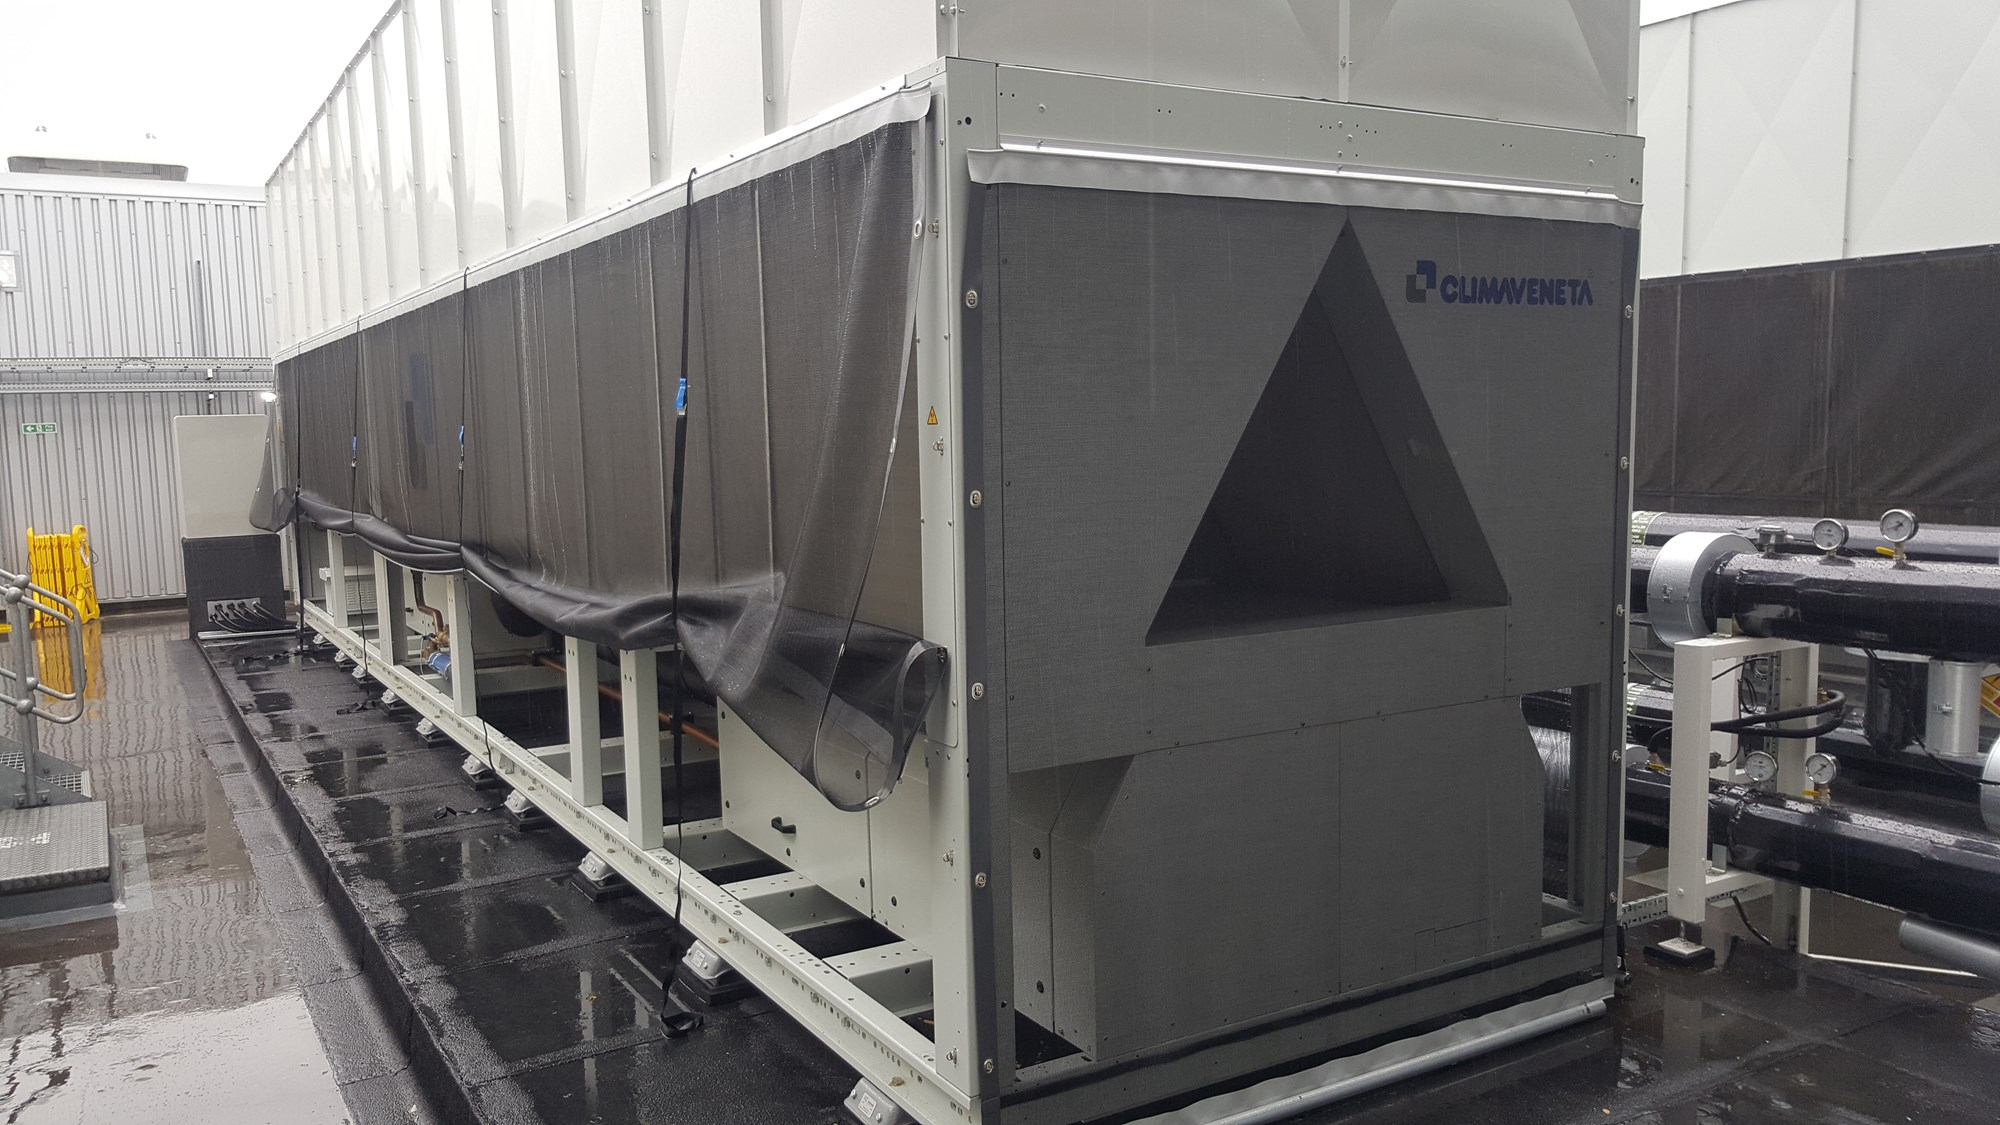 A Climaveneta Data Centre chiller protected by the RABScreen CAS system air intake filter